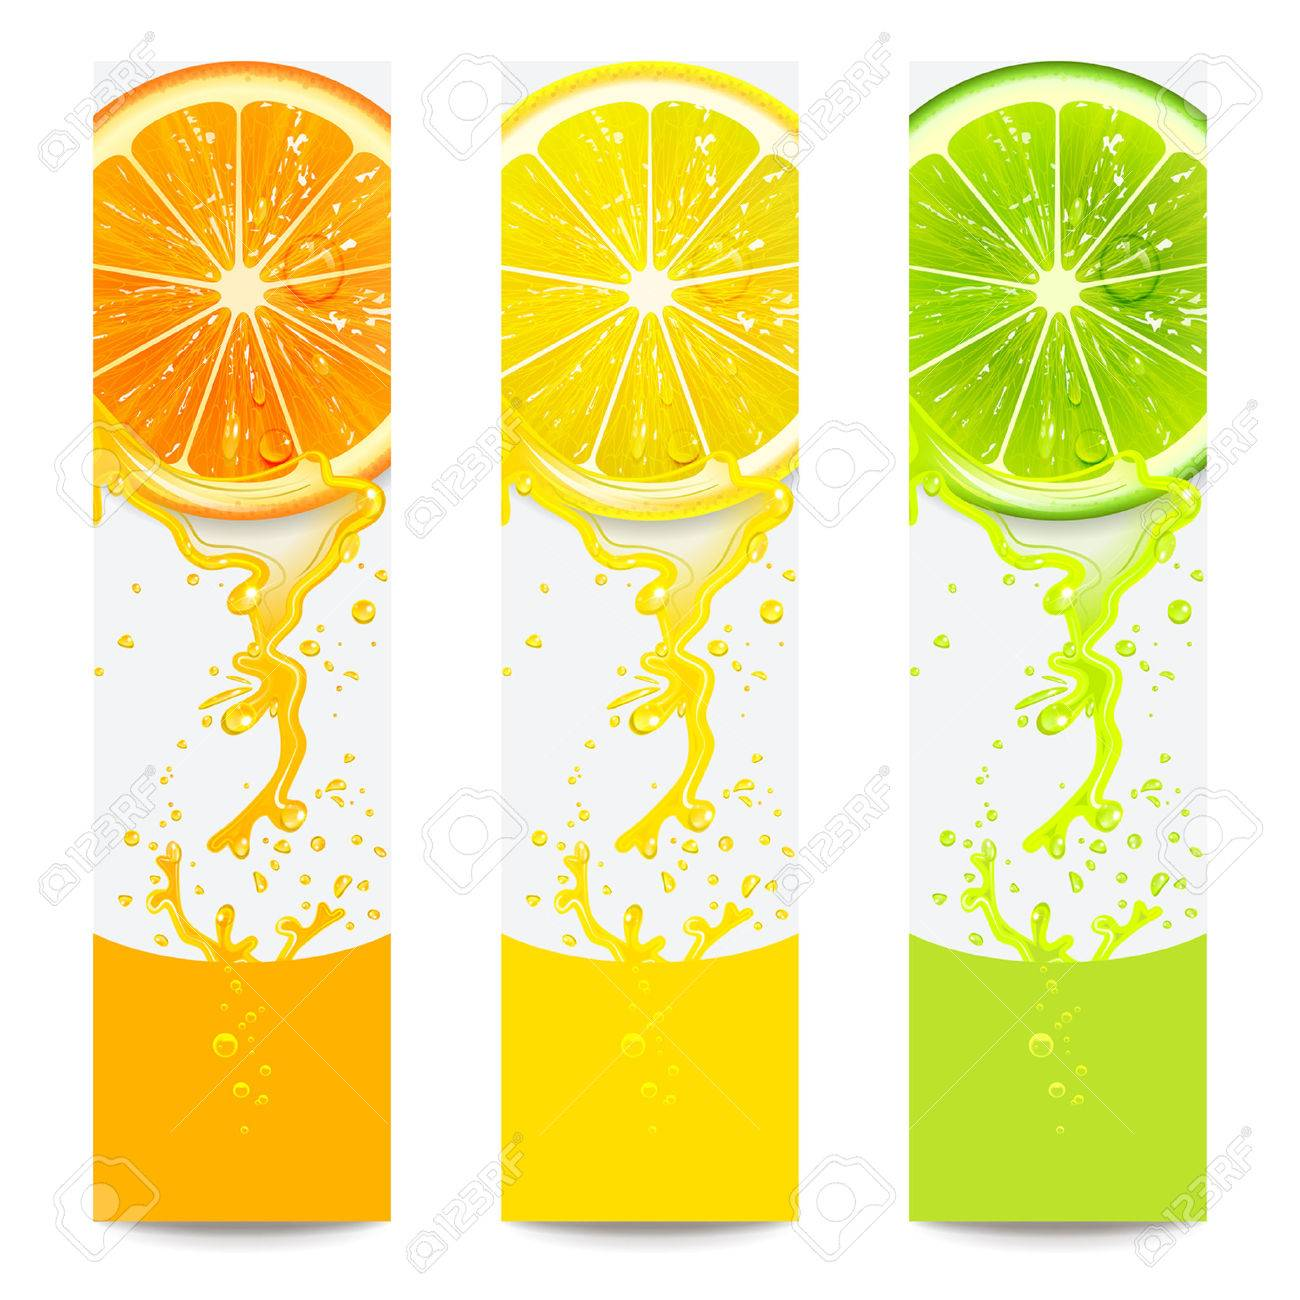 banners with fresh citrus fruit on a white background - 46145259